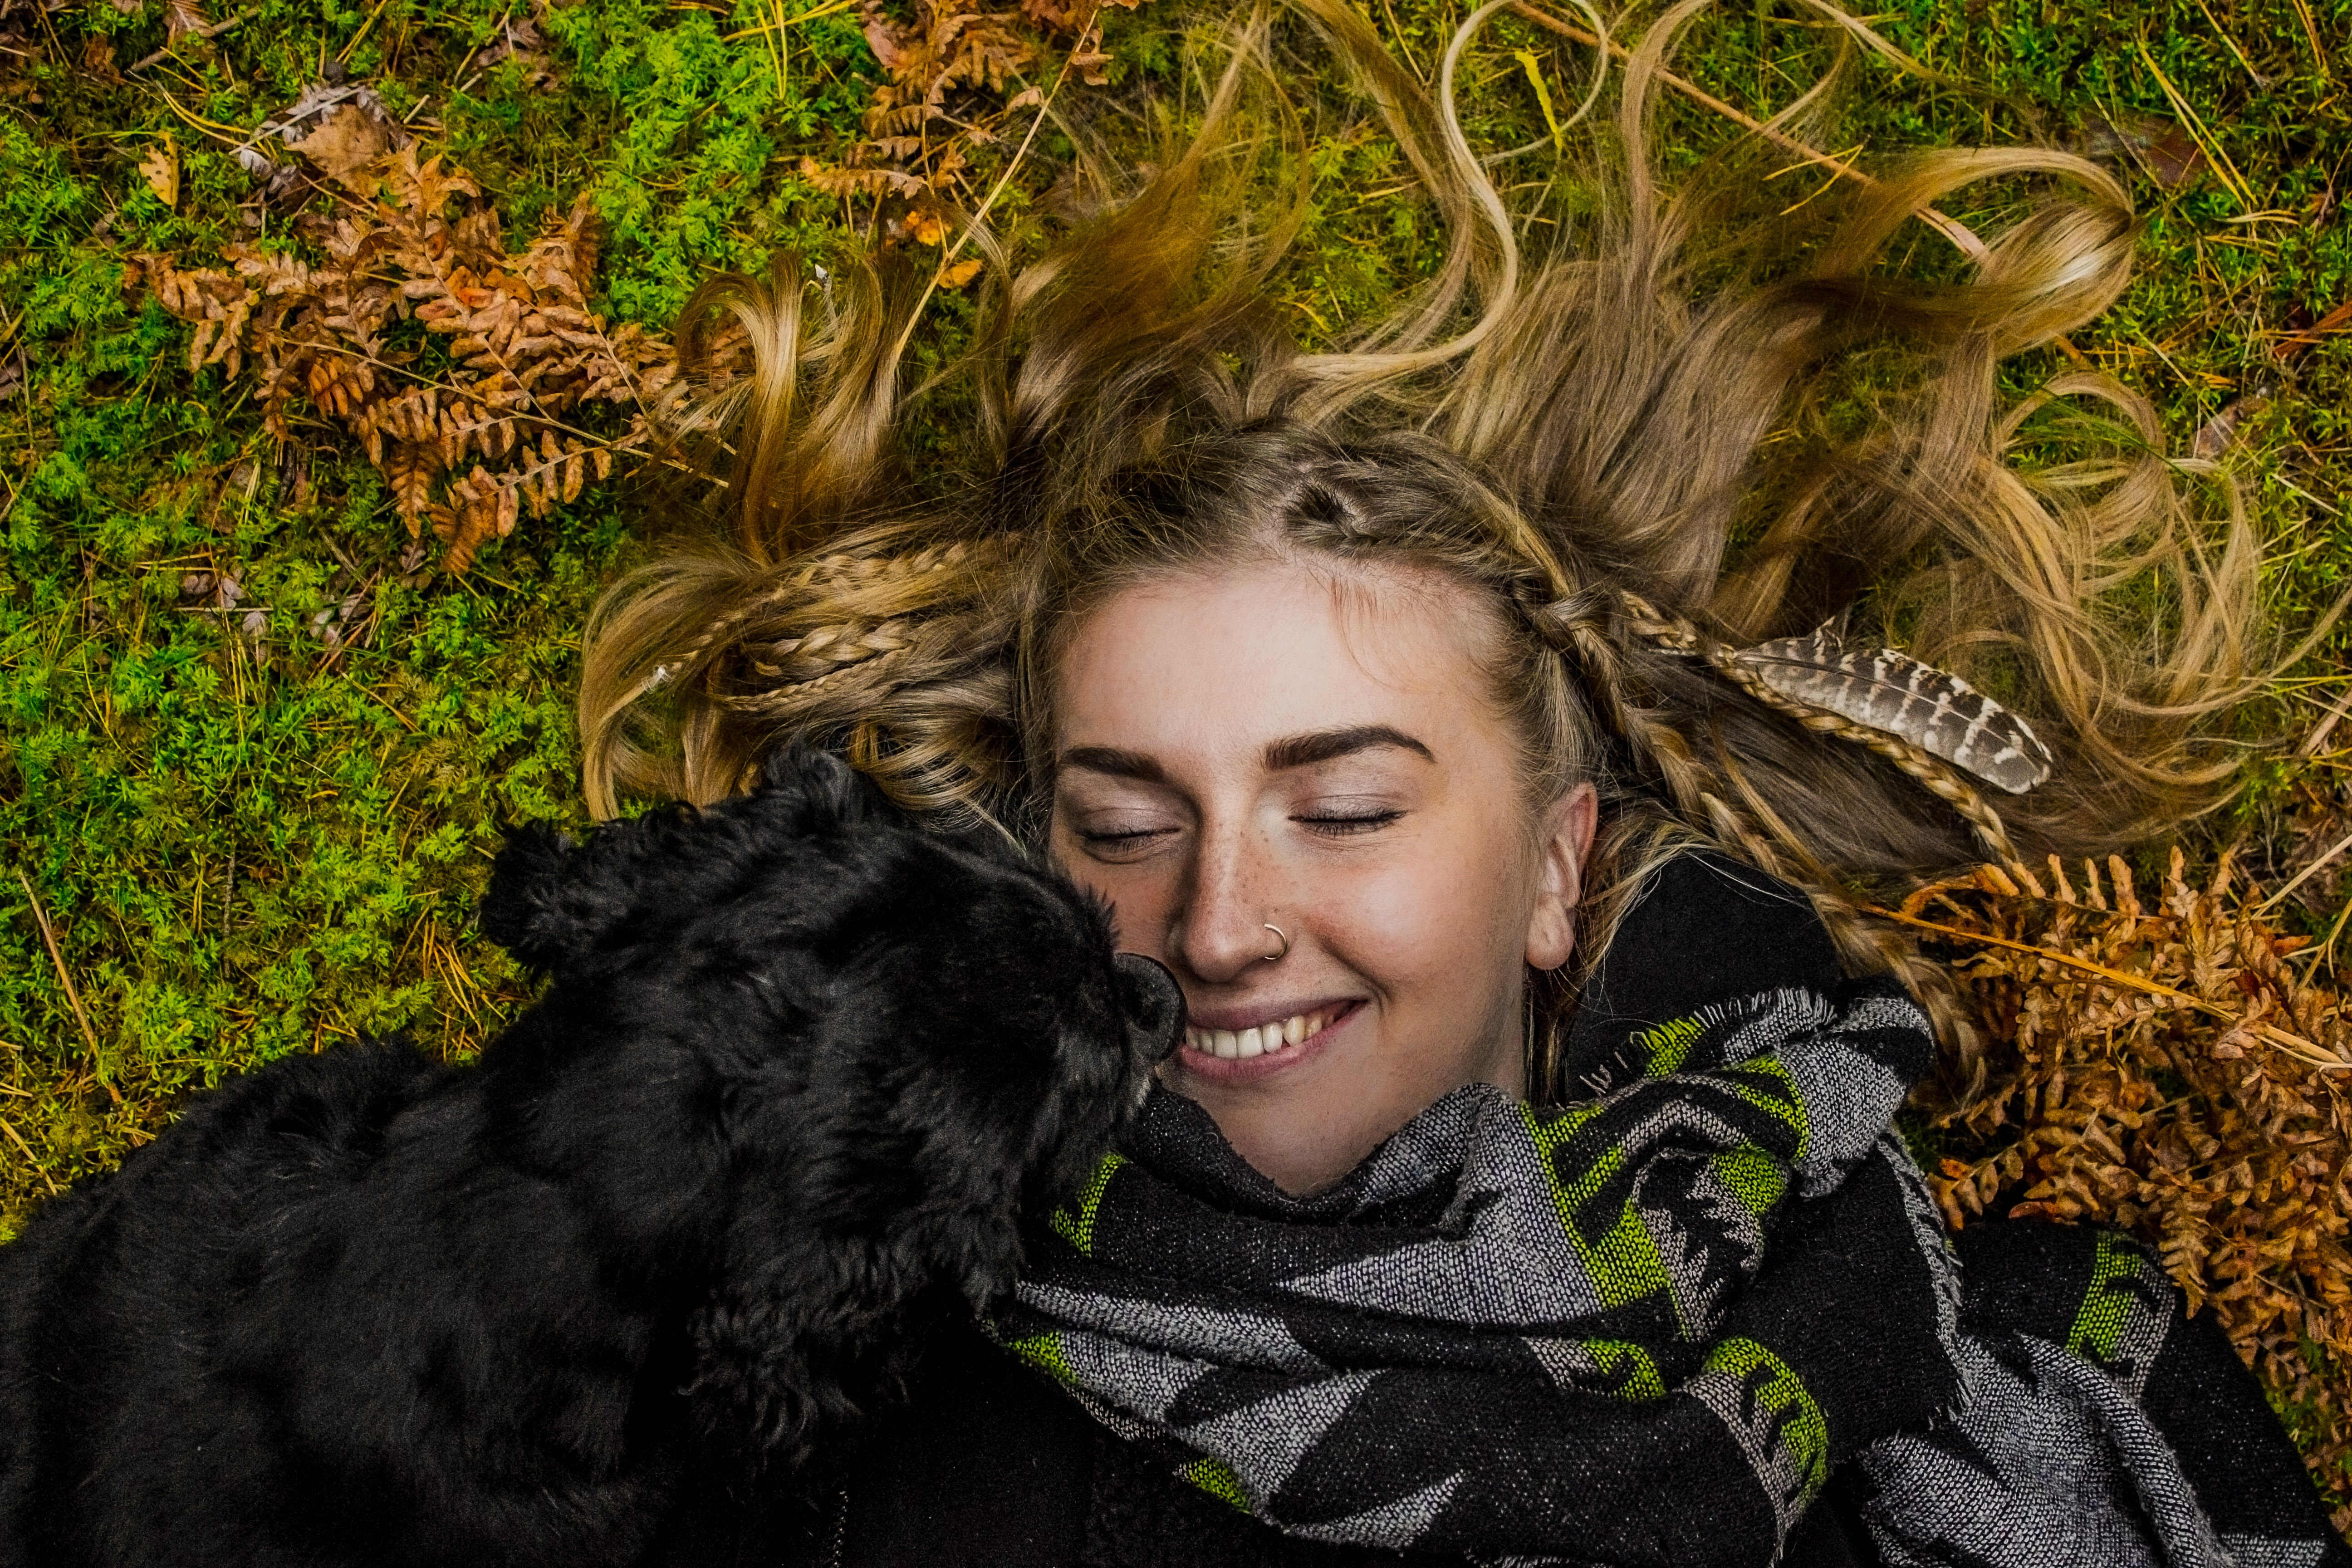 A black dog snuggling up to a smiling woman lying on grass